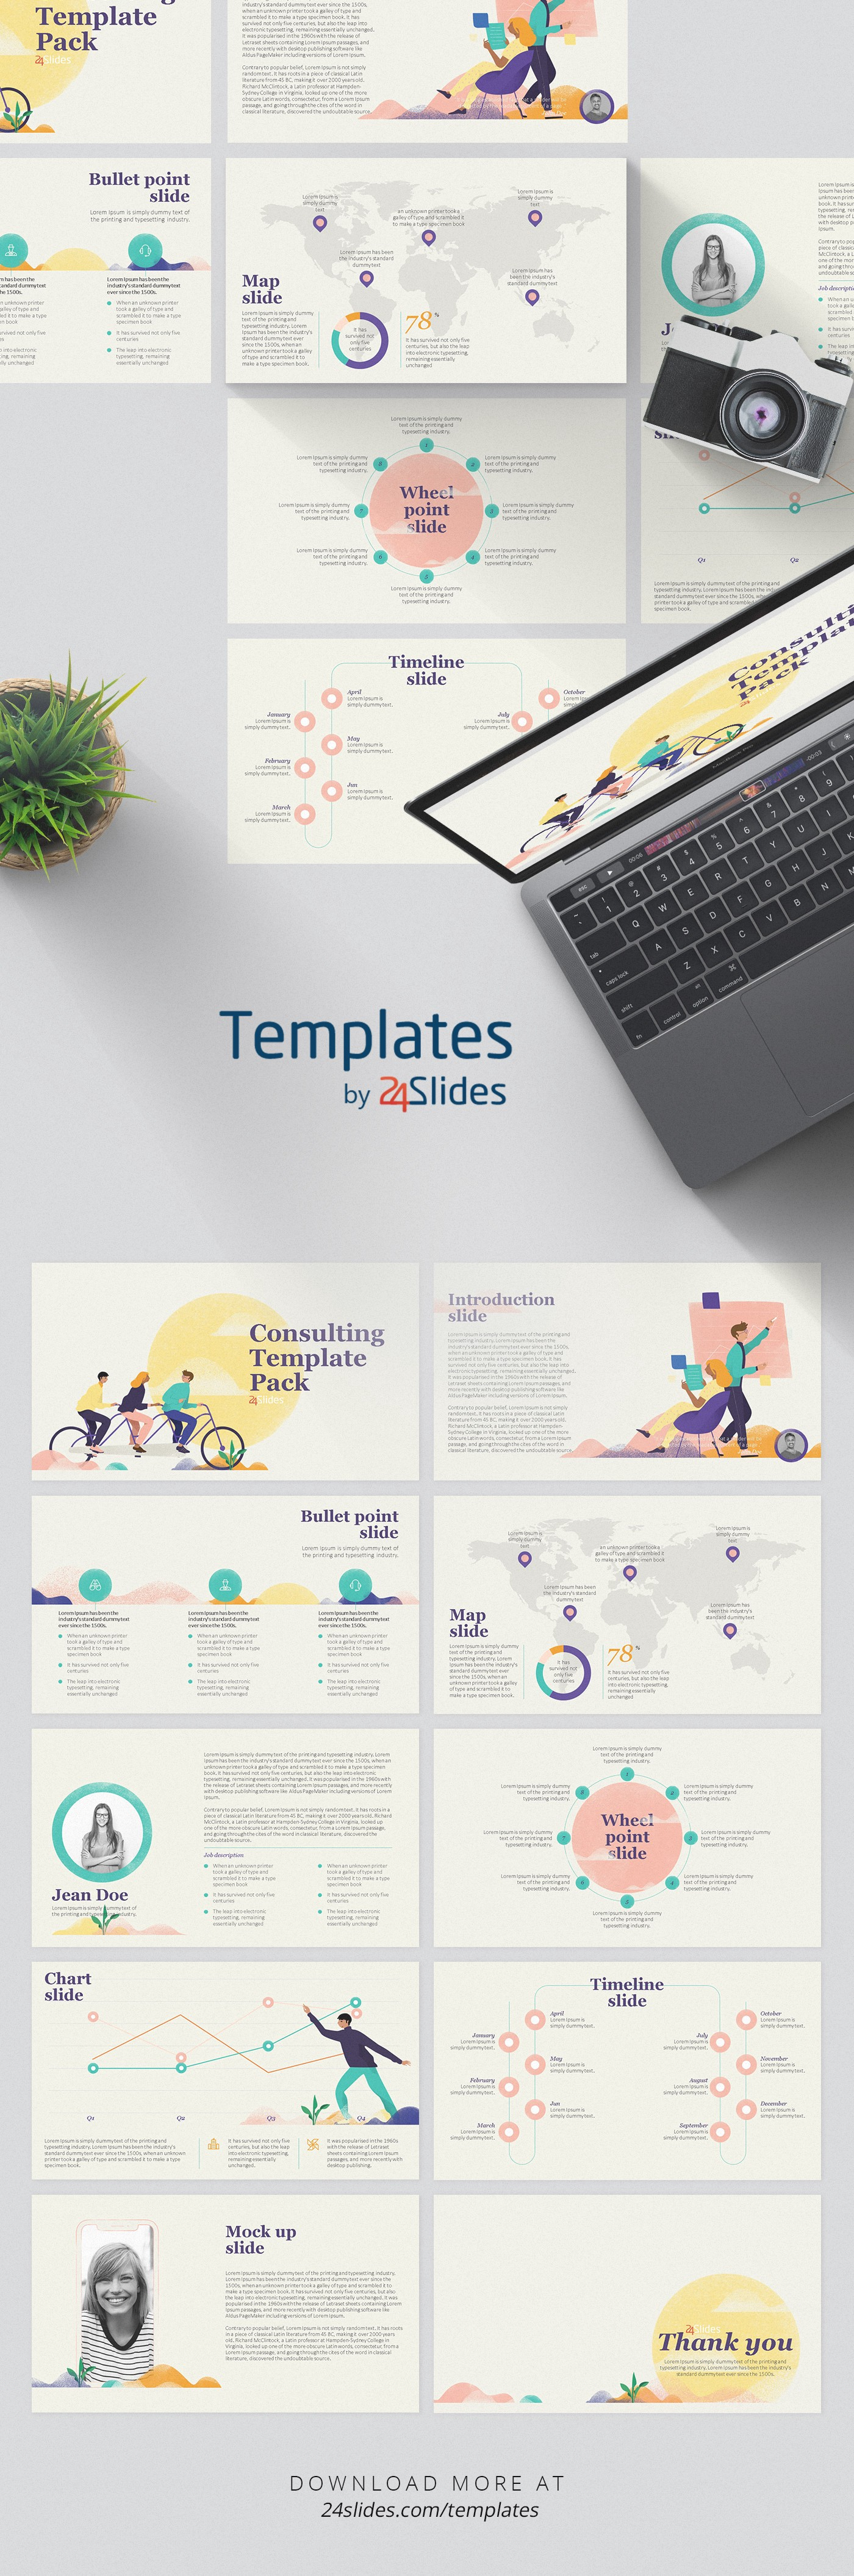 soft consulting presentation pack template | free download, Presentation Pack Template, Presentation templates